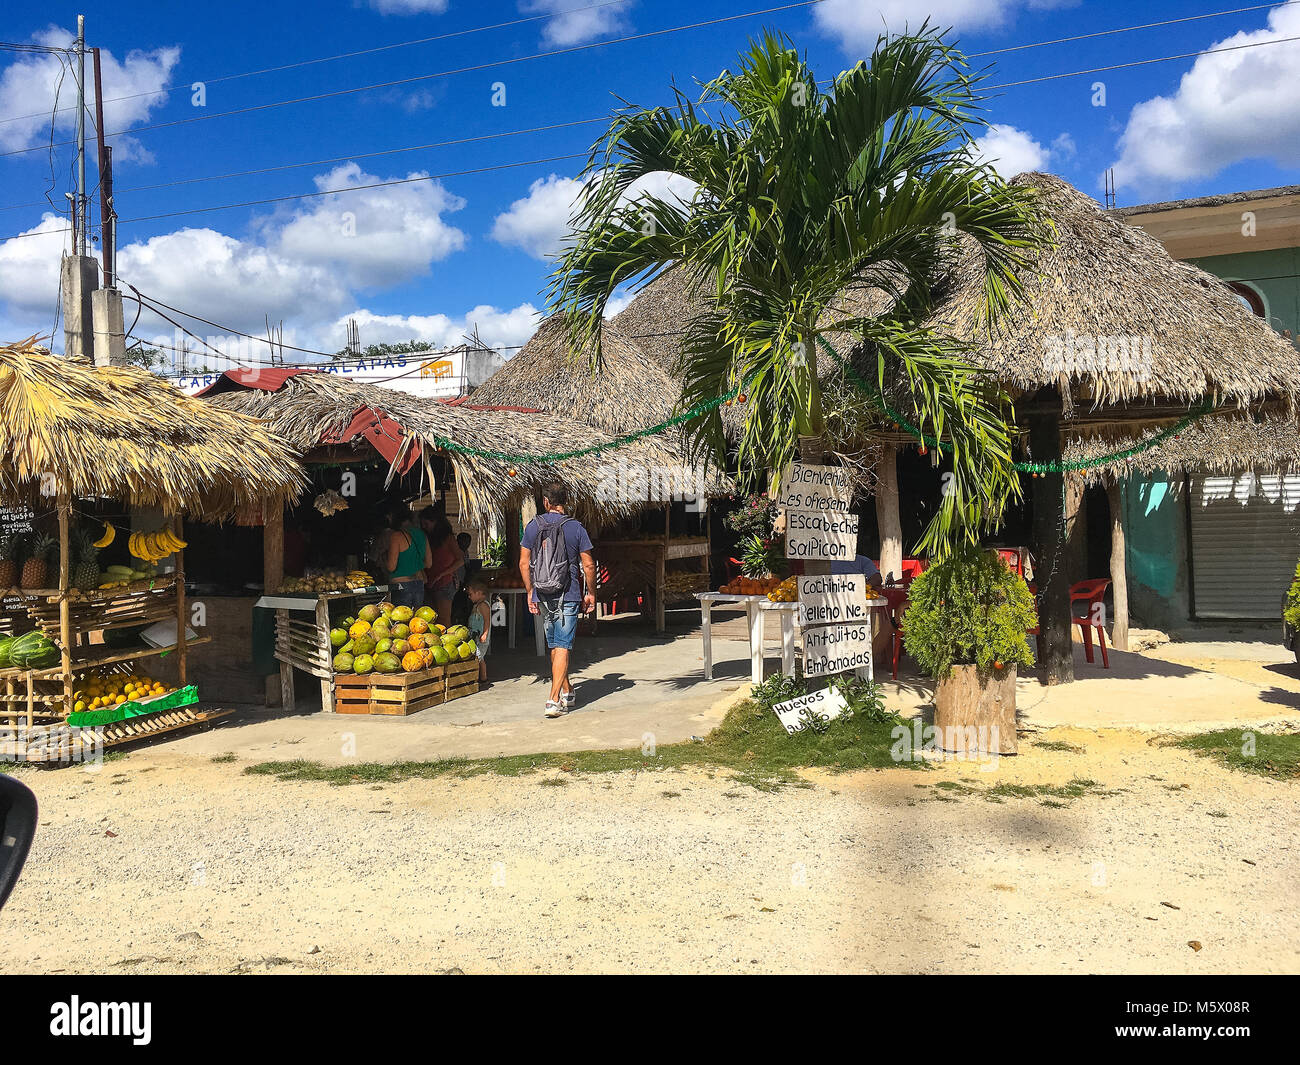 Coba, Mexico - February 4,2018: The local colorful tourist shop selling traditional mexican souvenirs. Stock Photo